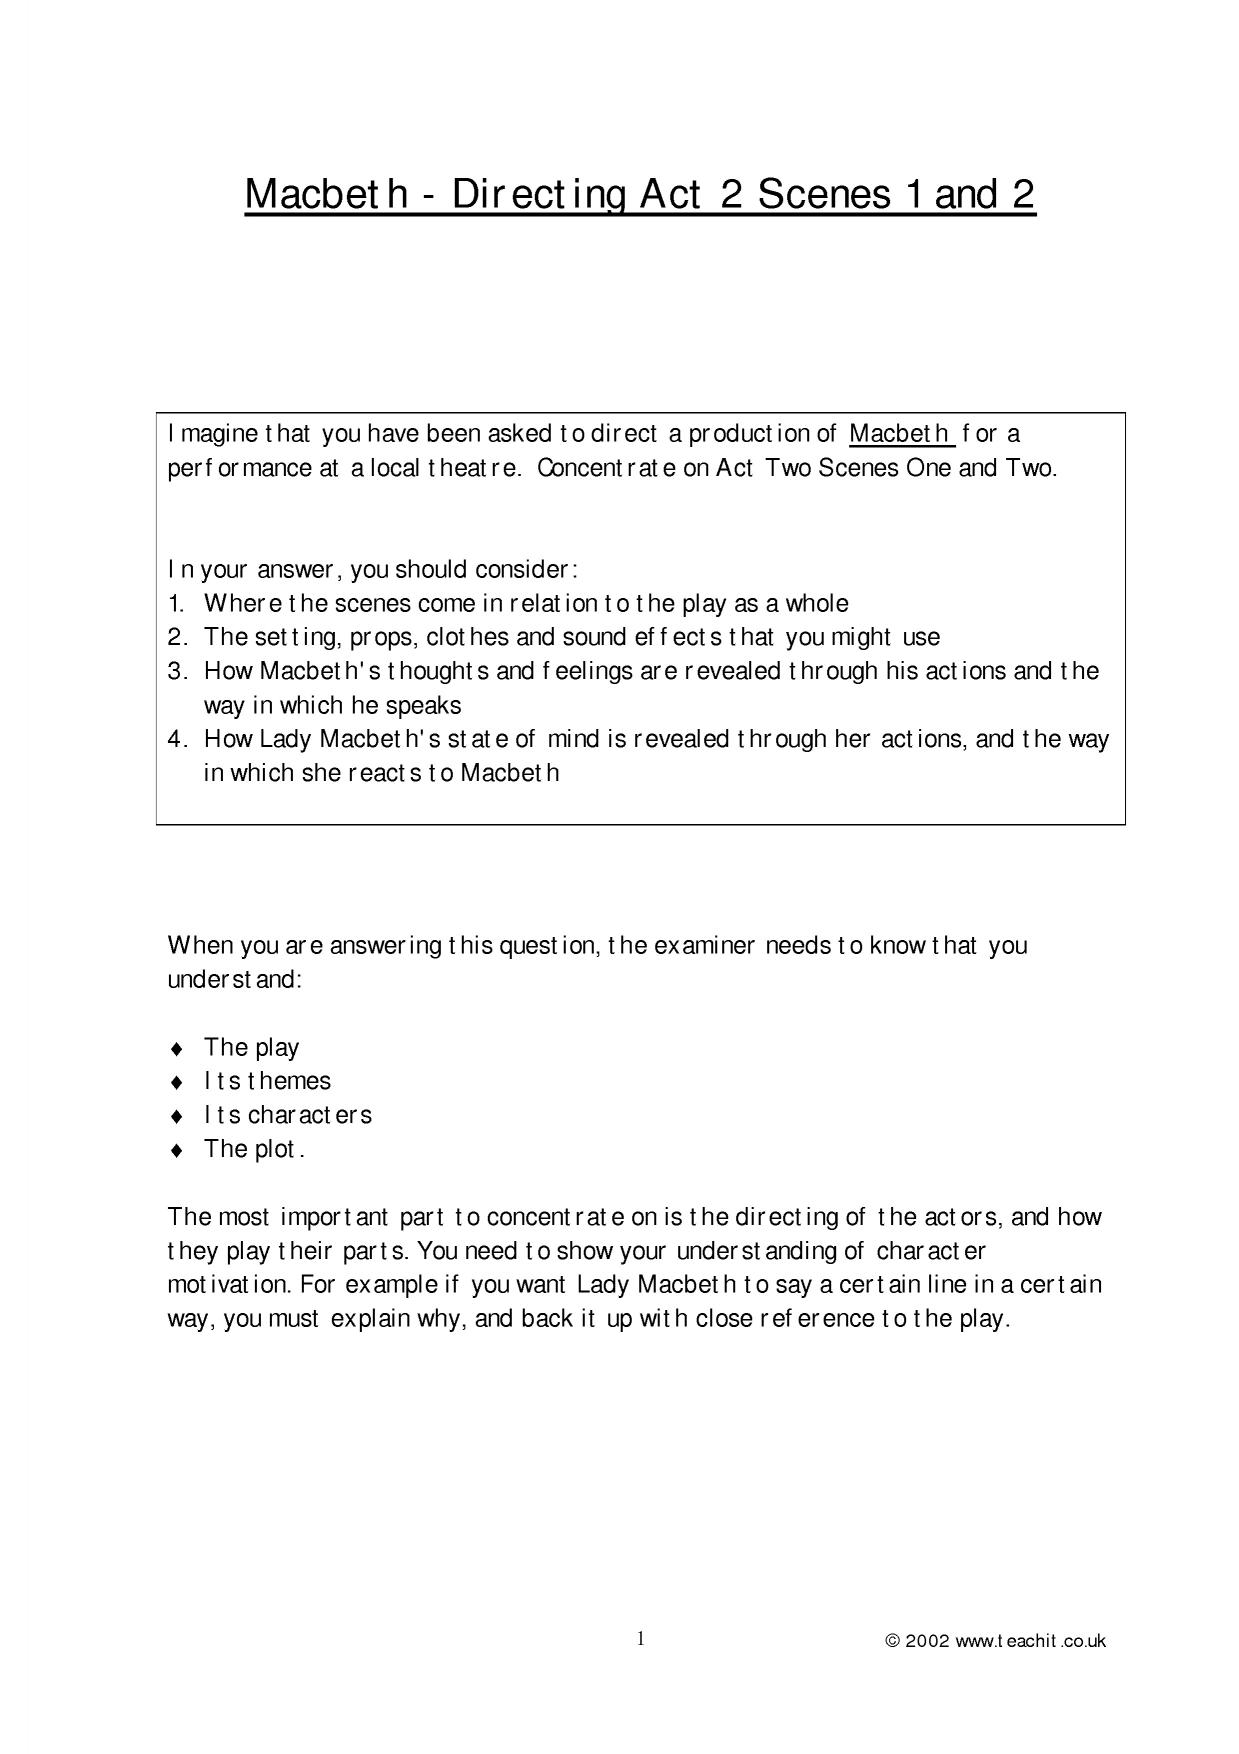 practice essay questions for macbeth Macbeth by william shakespeare 22 igcse exam style questions for practice a question bank for igcse literature 0486(cie) paper 2 / contents 22 critical essay questions  .